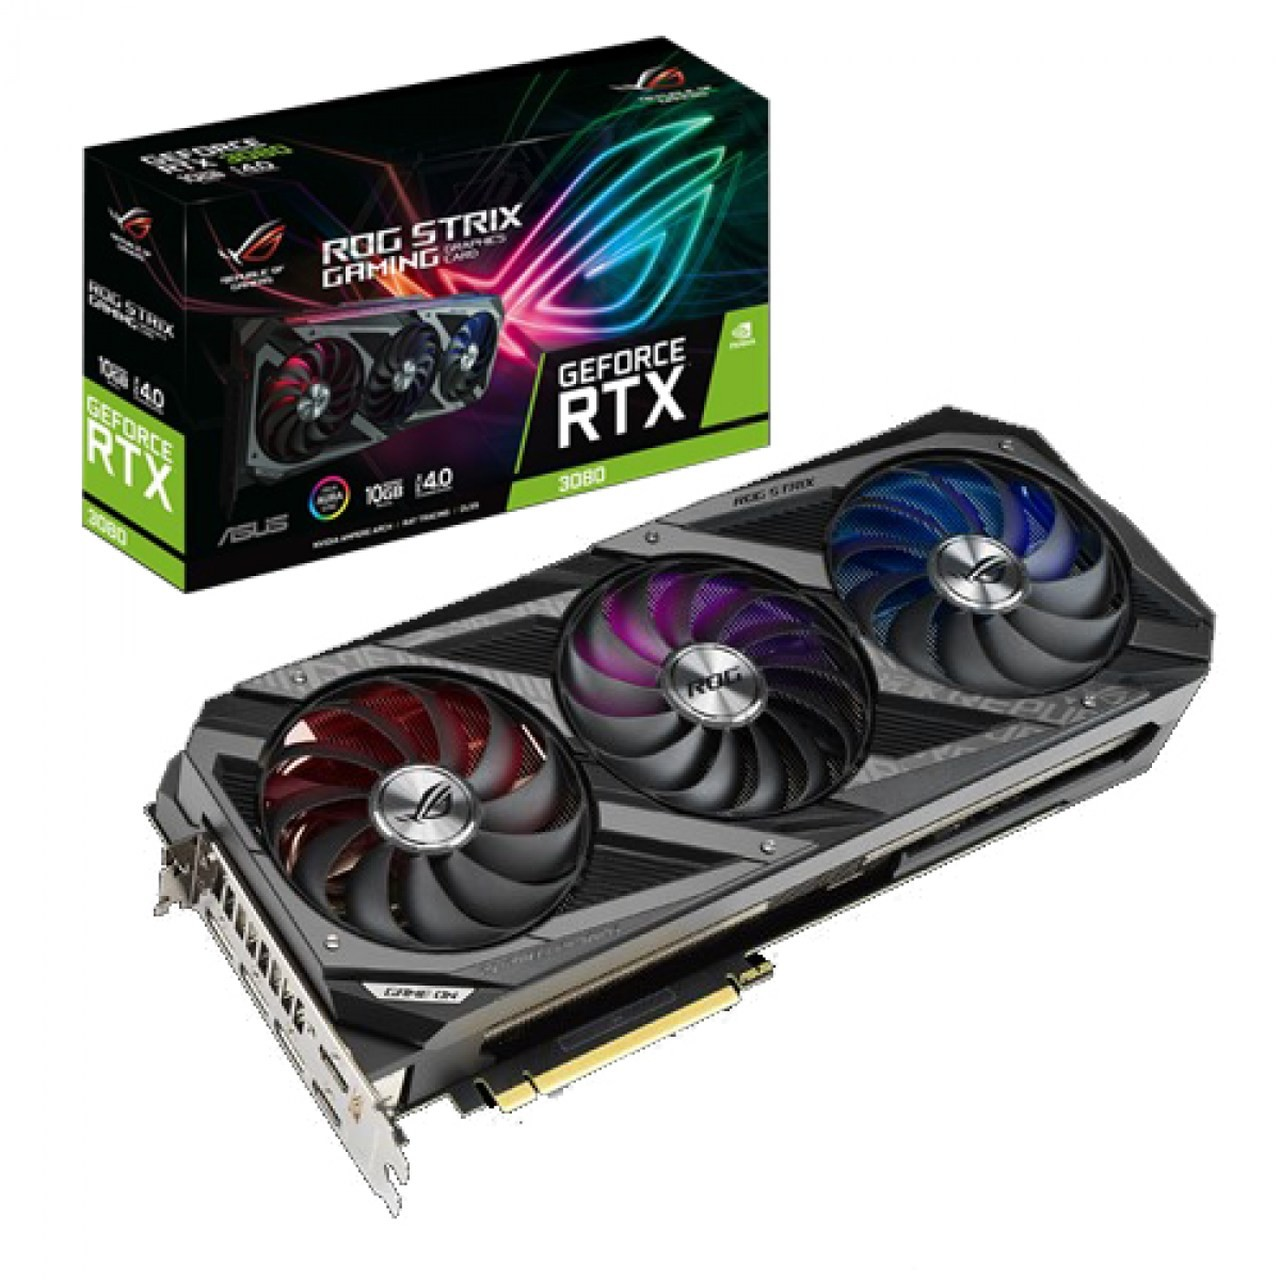 Placa de Vídeo Asus ROG Strix GeForce RTX 3080 10GB GDDR6X 320-bit ROG-STRIX-RTX3080-10G-GAMING